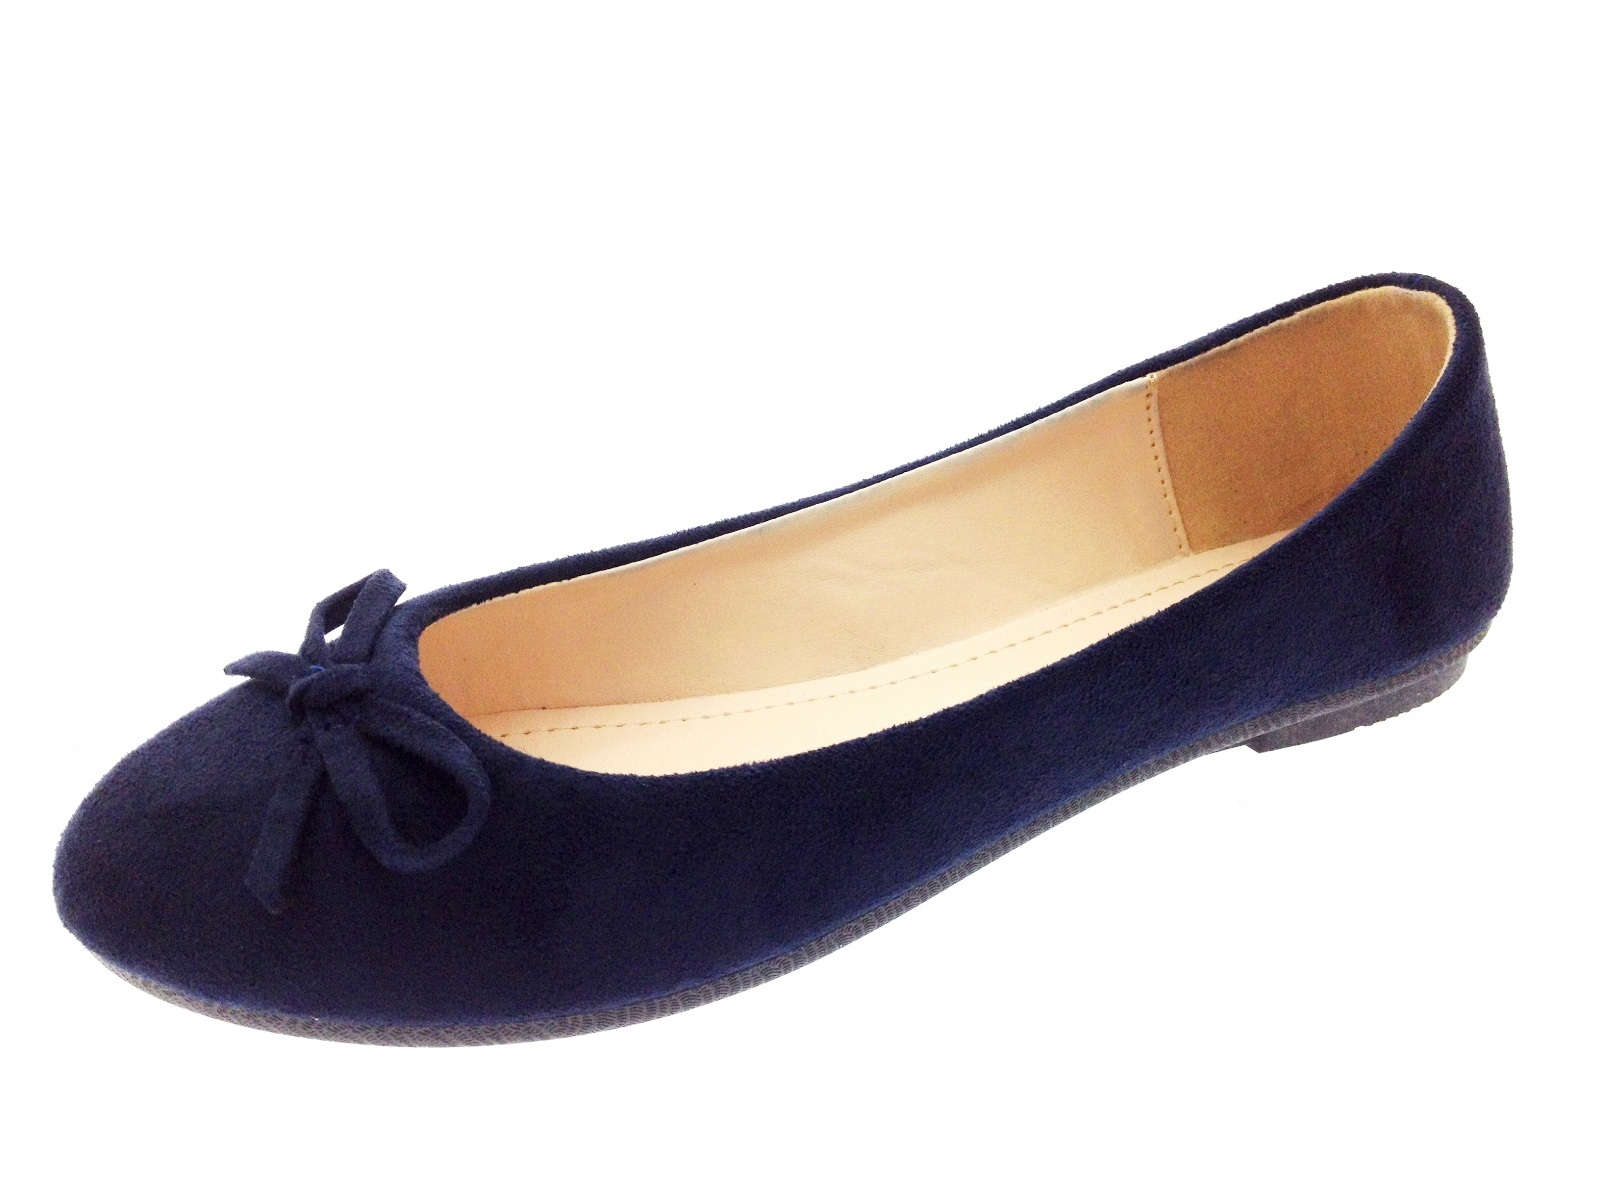 Womens Faux Suede Dolly Ballet Pumps Flat Casual Loafers Dolly Shoes Size UK 3-8 | EBay